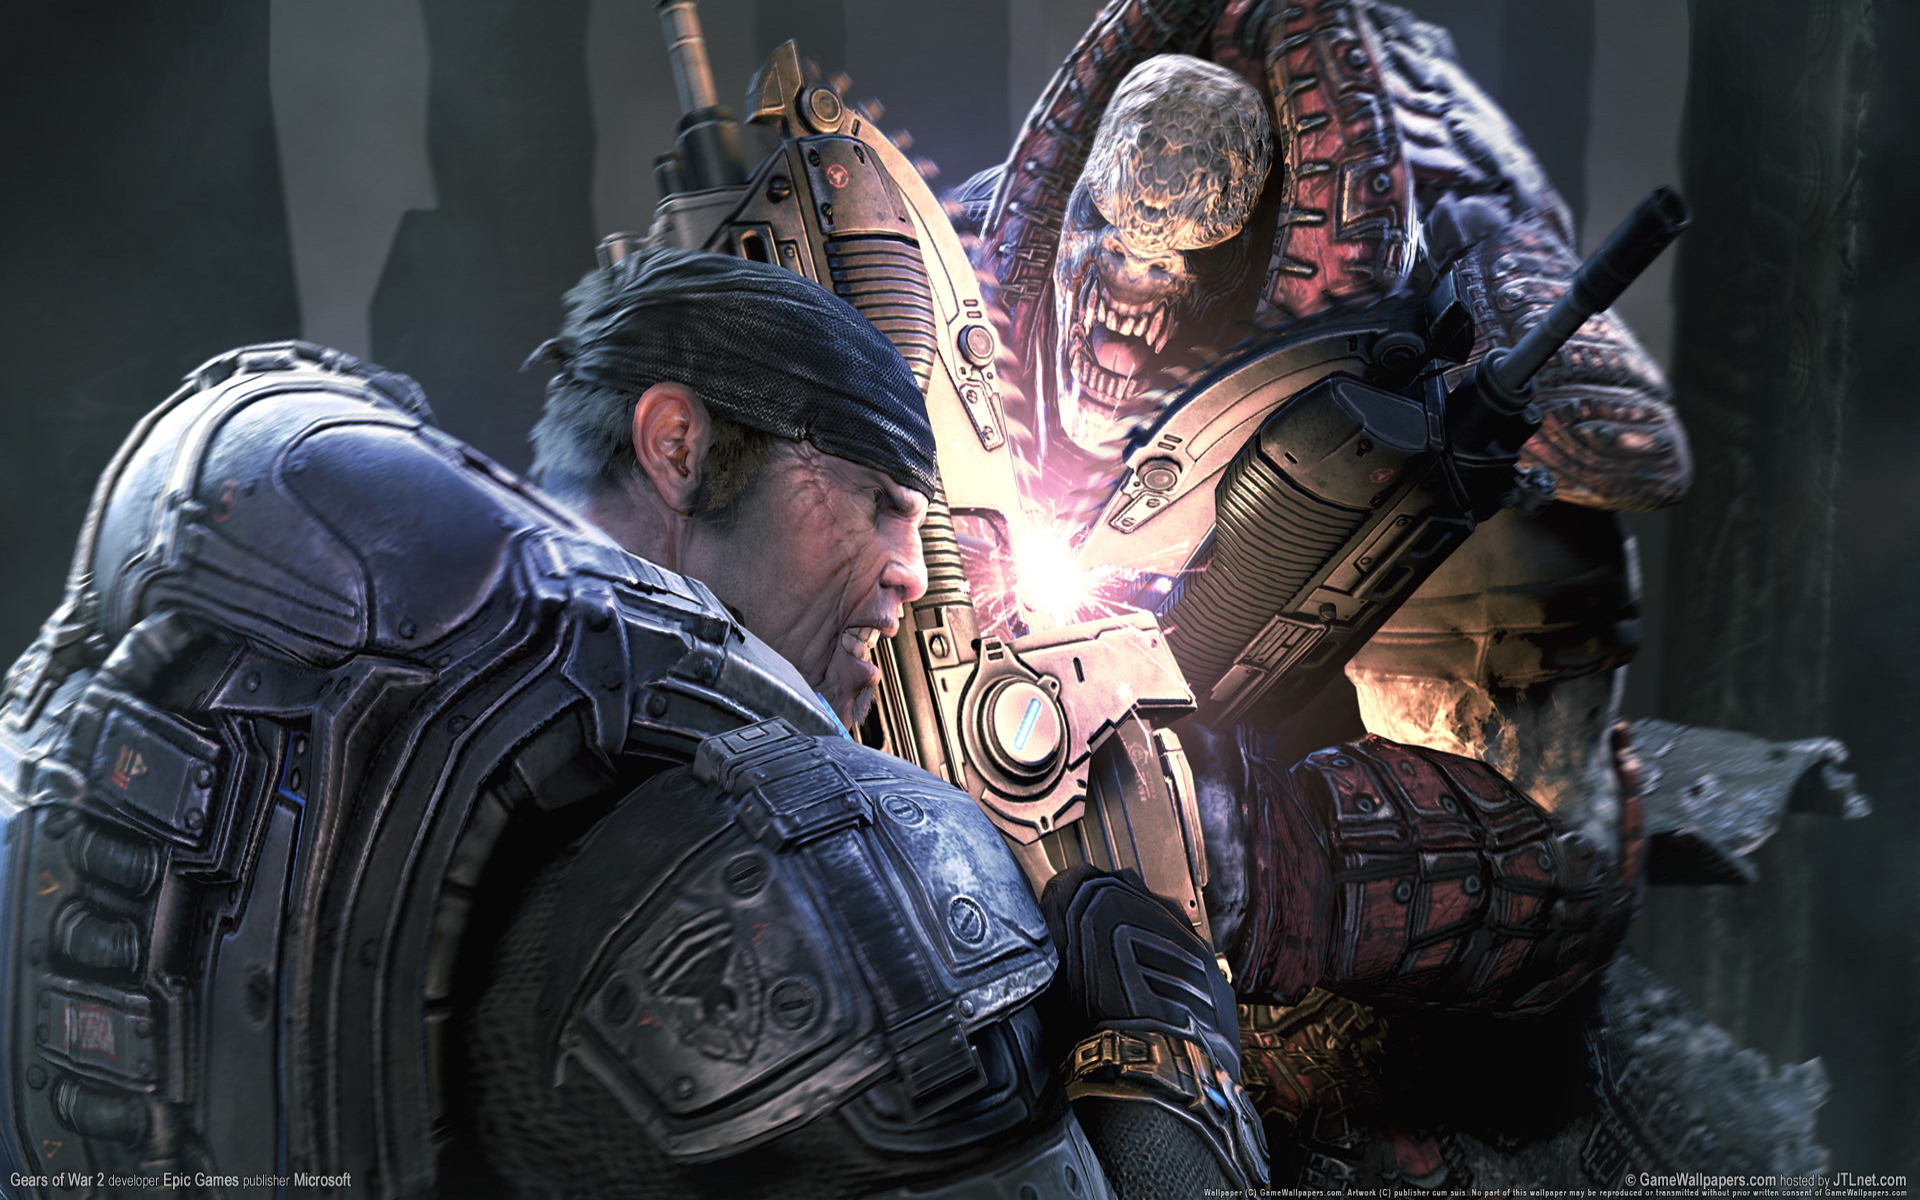 gears of war 2 full pc game download